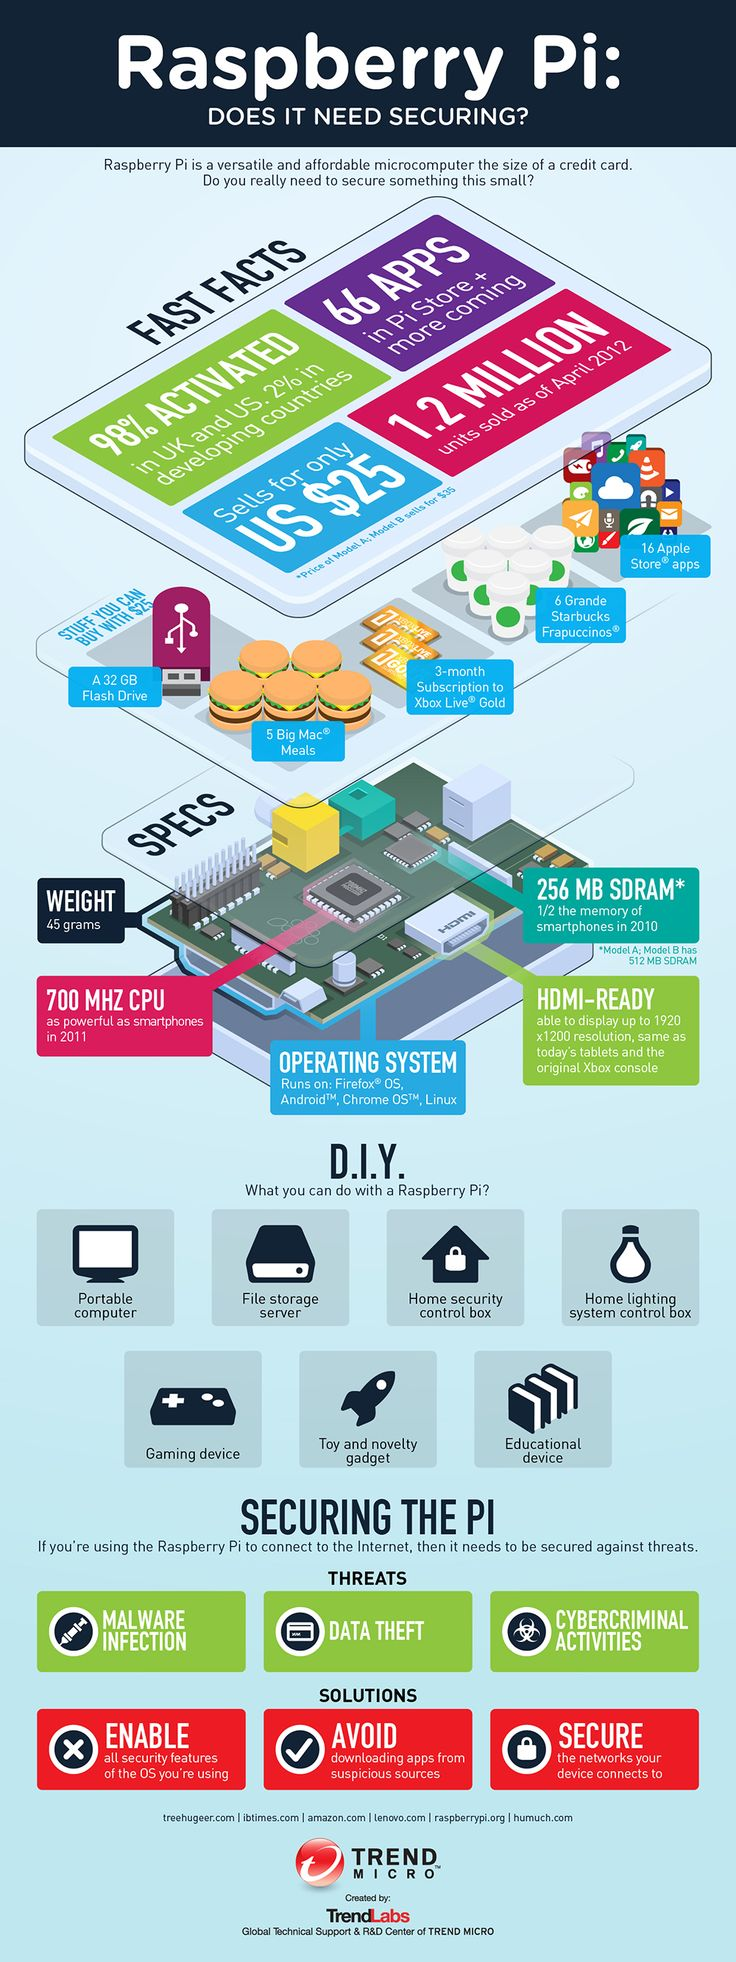 The Raspberry PiRaspy Infographic, Raspberries Pi, Automation, Infographic Arduino, Techno Fun, Raspberrypi Infographic, Infographic Technology, Computers Stuff, Electronics